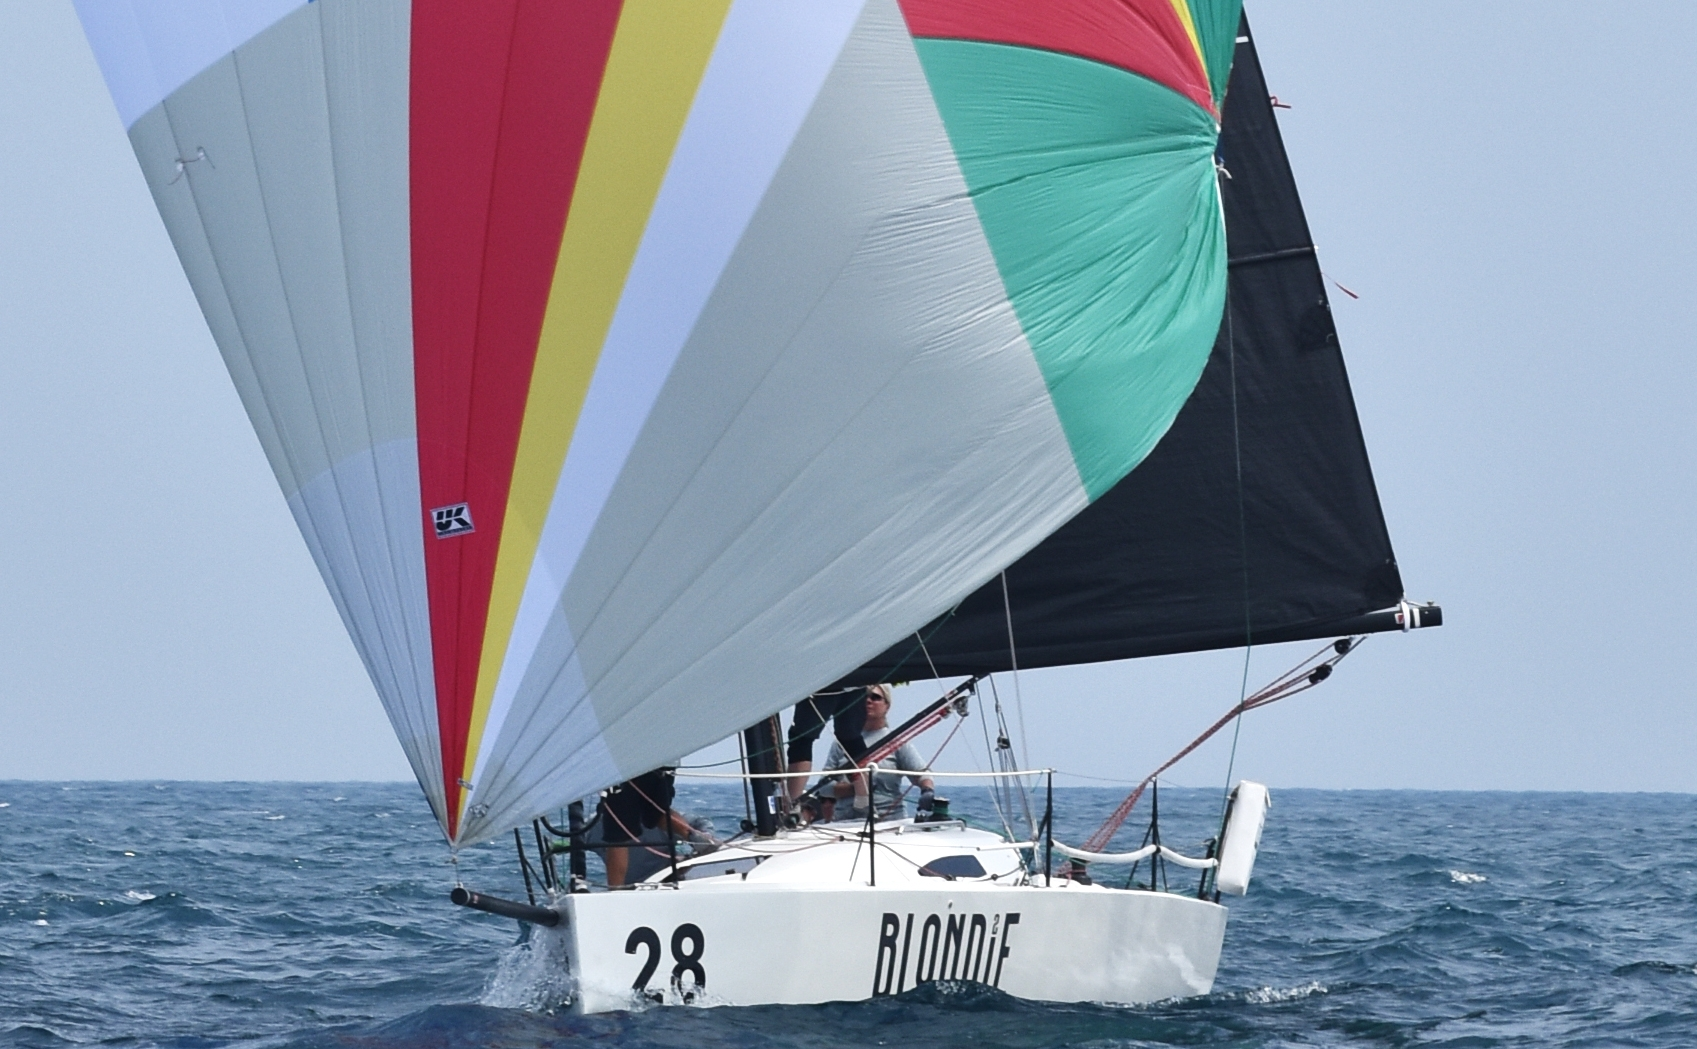 If you are thinking about ordering new sails that will be ready to use on the first day of the 2019 sailing season, now is the time to order. Most new sail delivery dates are delayed because we can't get the measurements we need because the mast is down or the boat is encased in shrink wrap. So call today before you cover your boat or pull your mast.